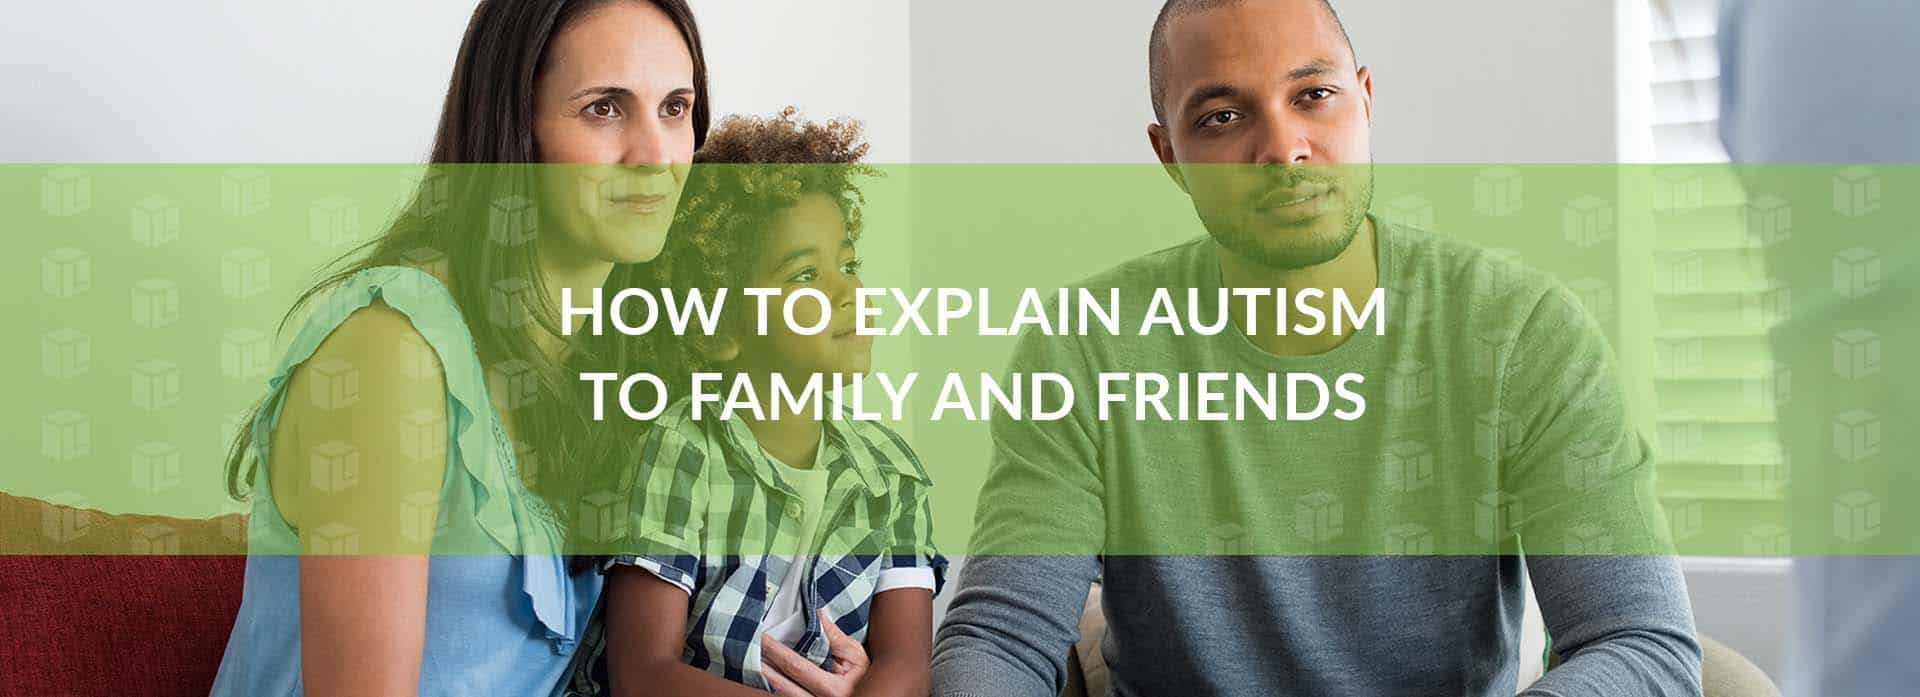 How To Explain Autism To Family And Friends